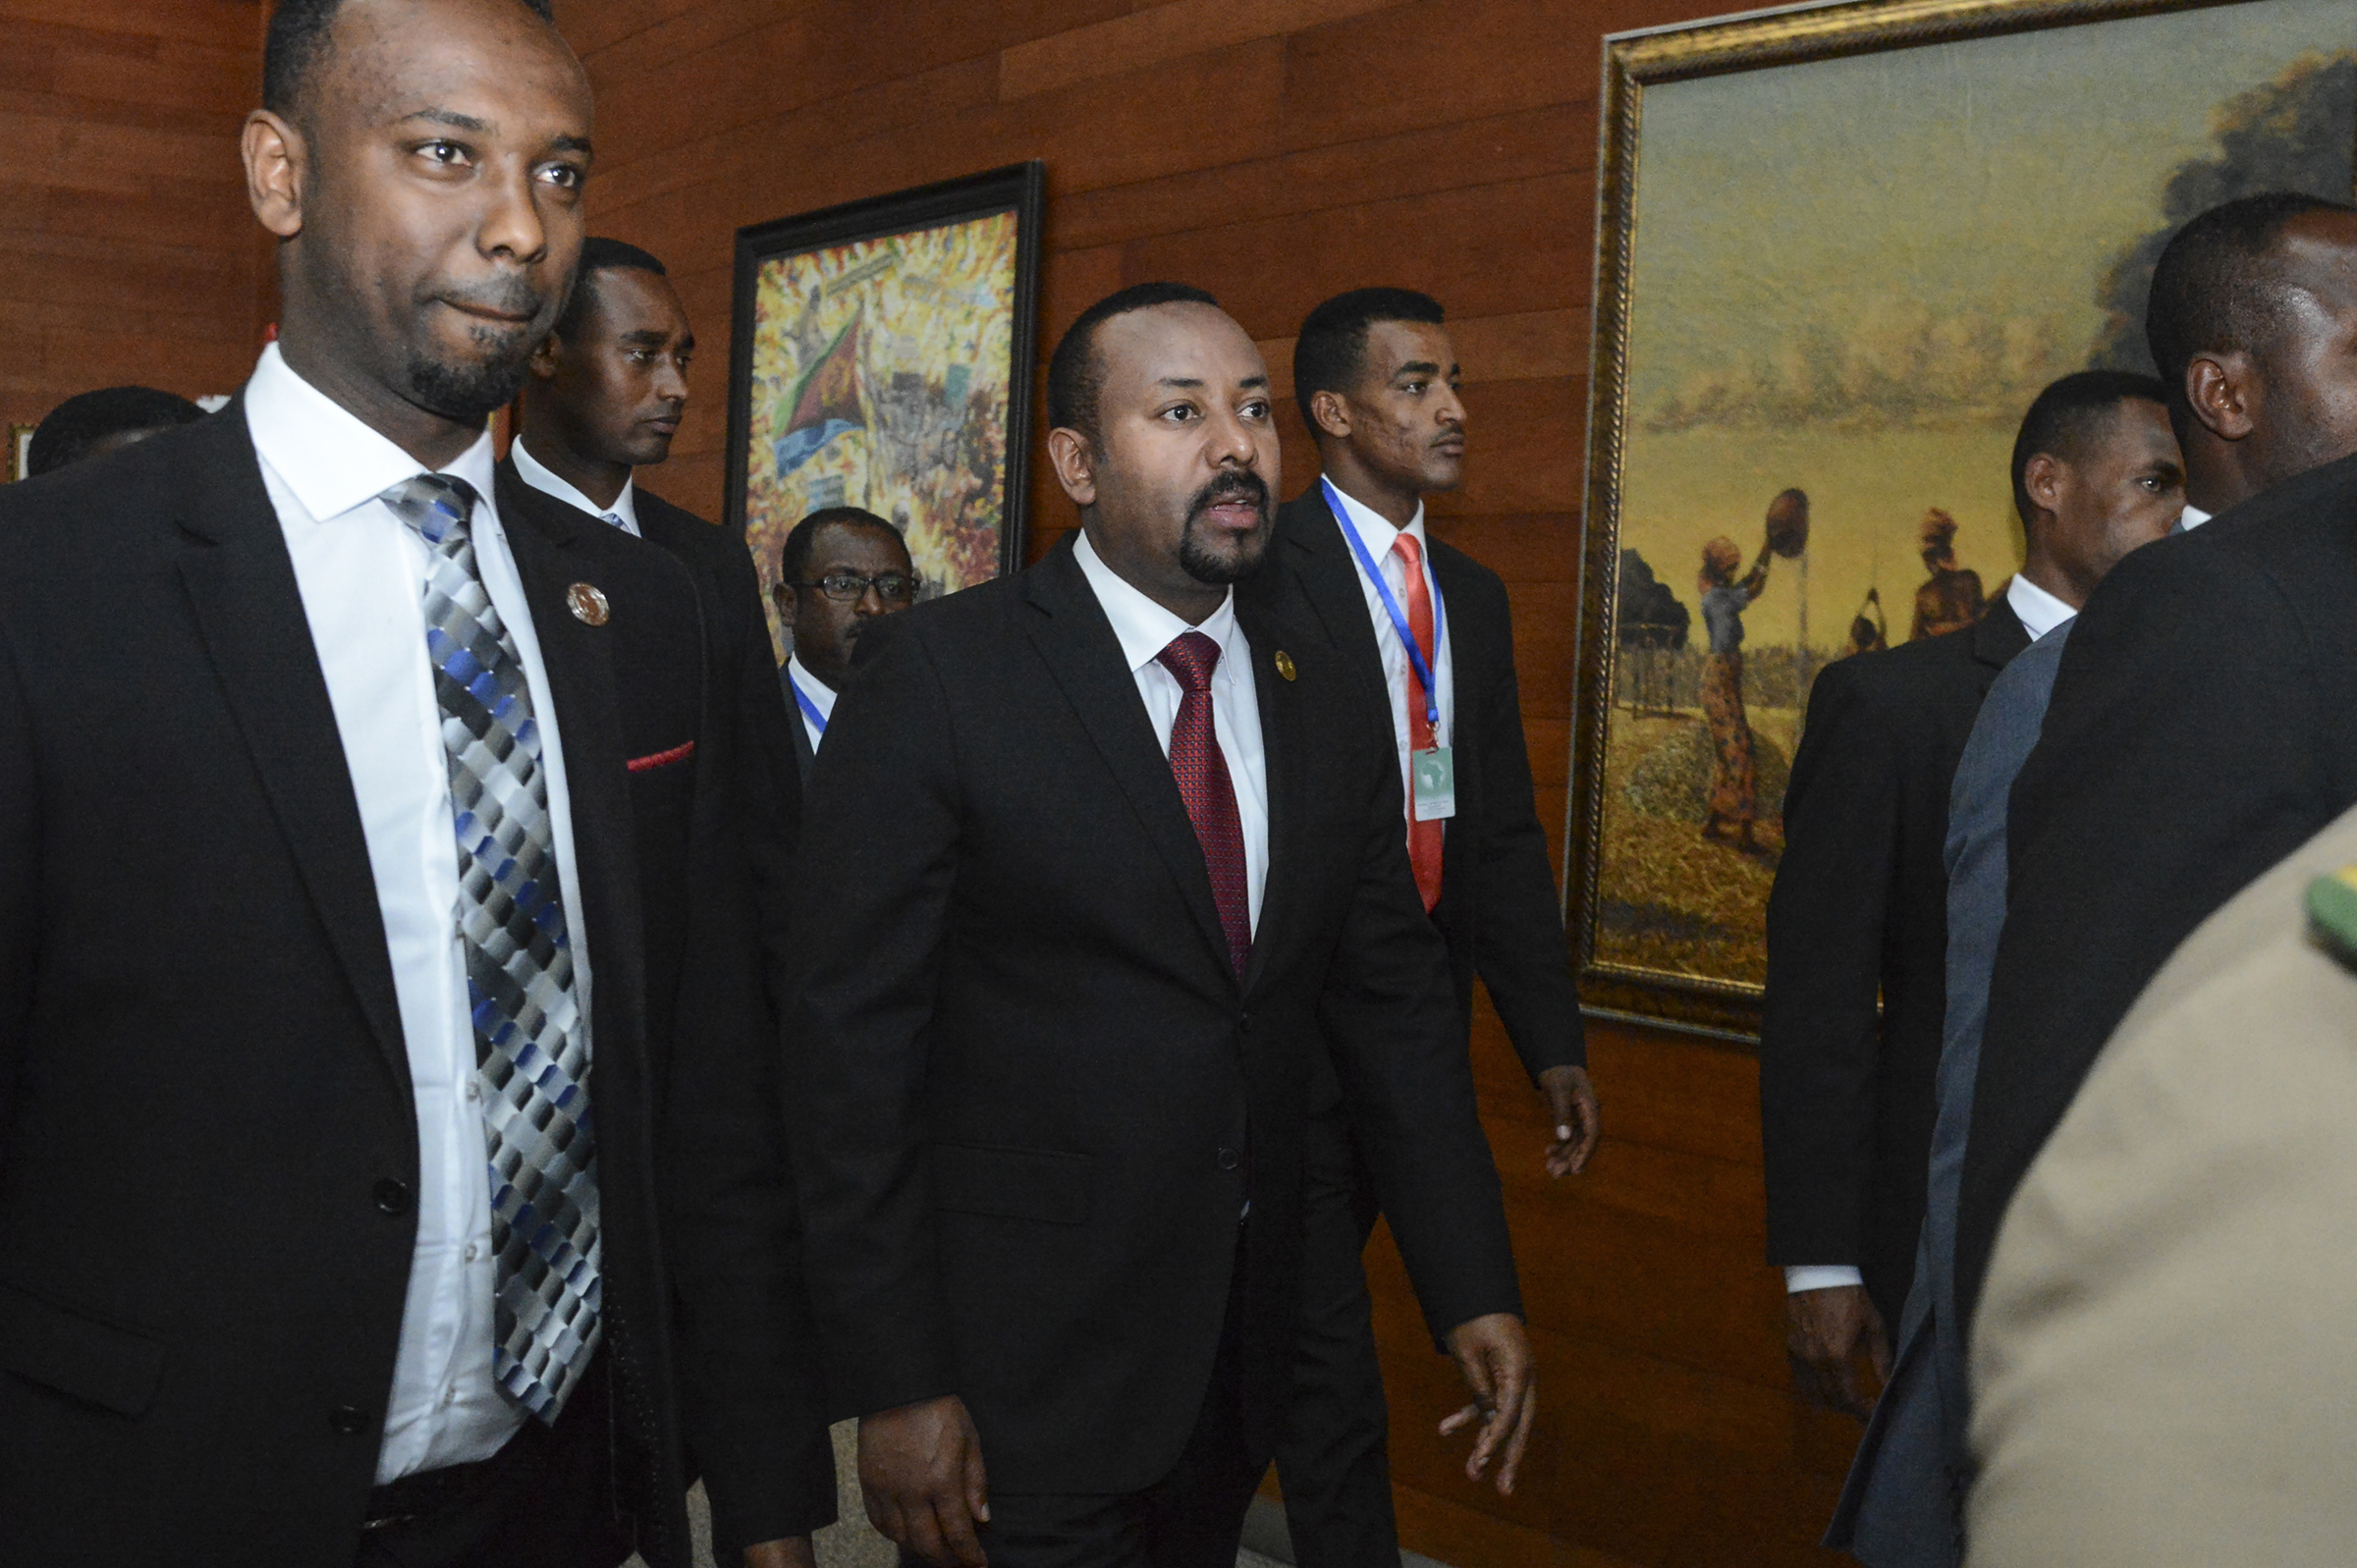 Ethiopia's Prime Minister Abiy Ahmed, center, arrives for the opening session of the 33rd African Union Summit in Addis Ababa, Ethiopia, in Feb. 2020.